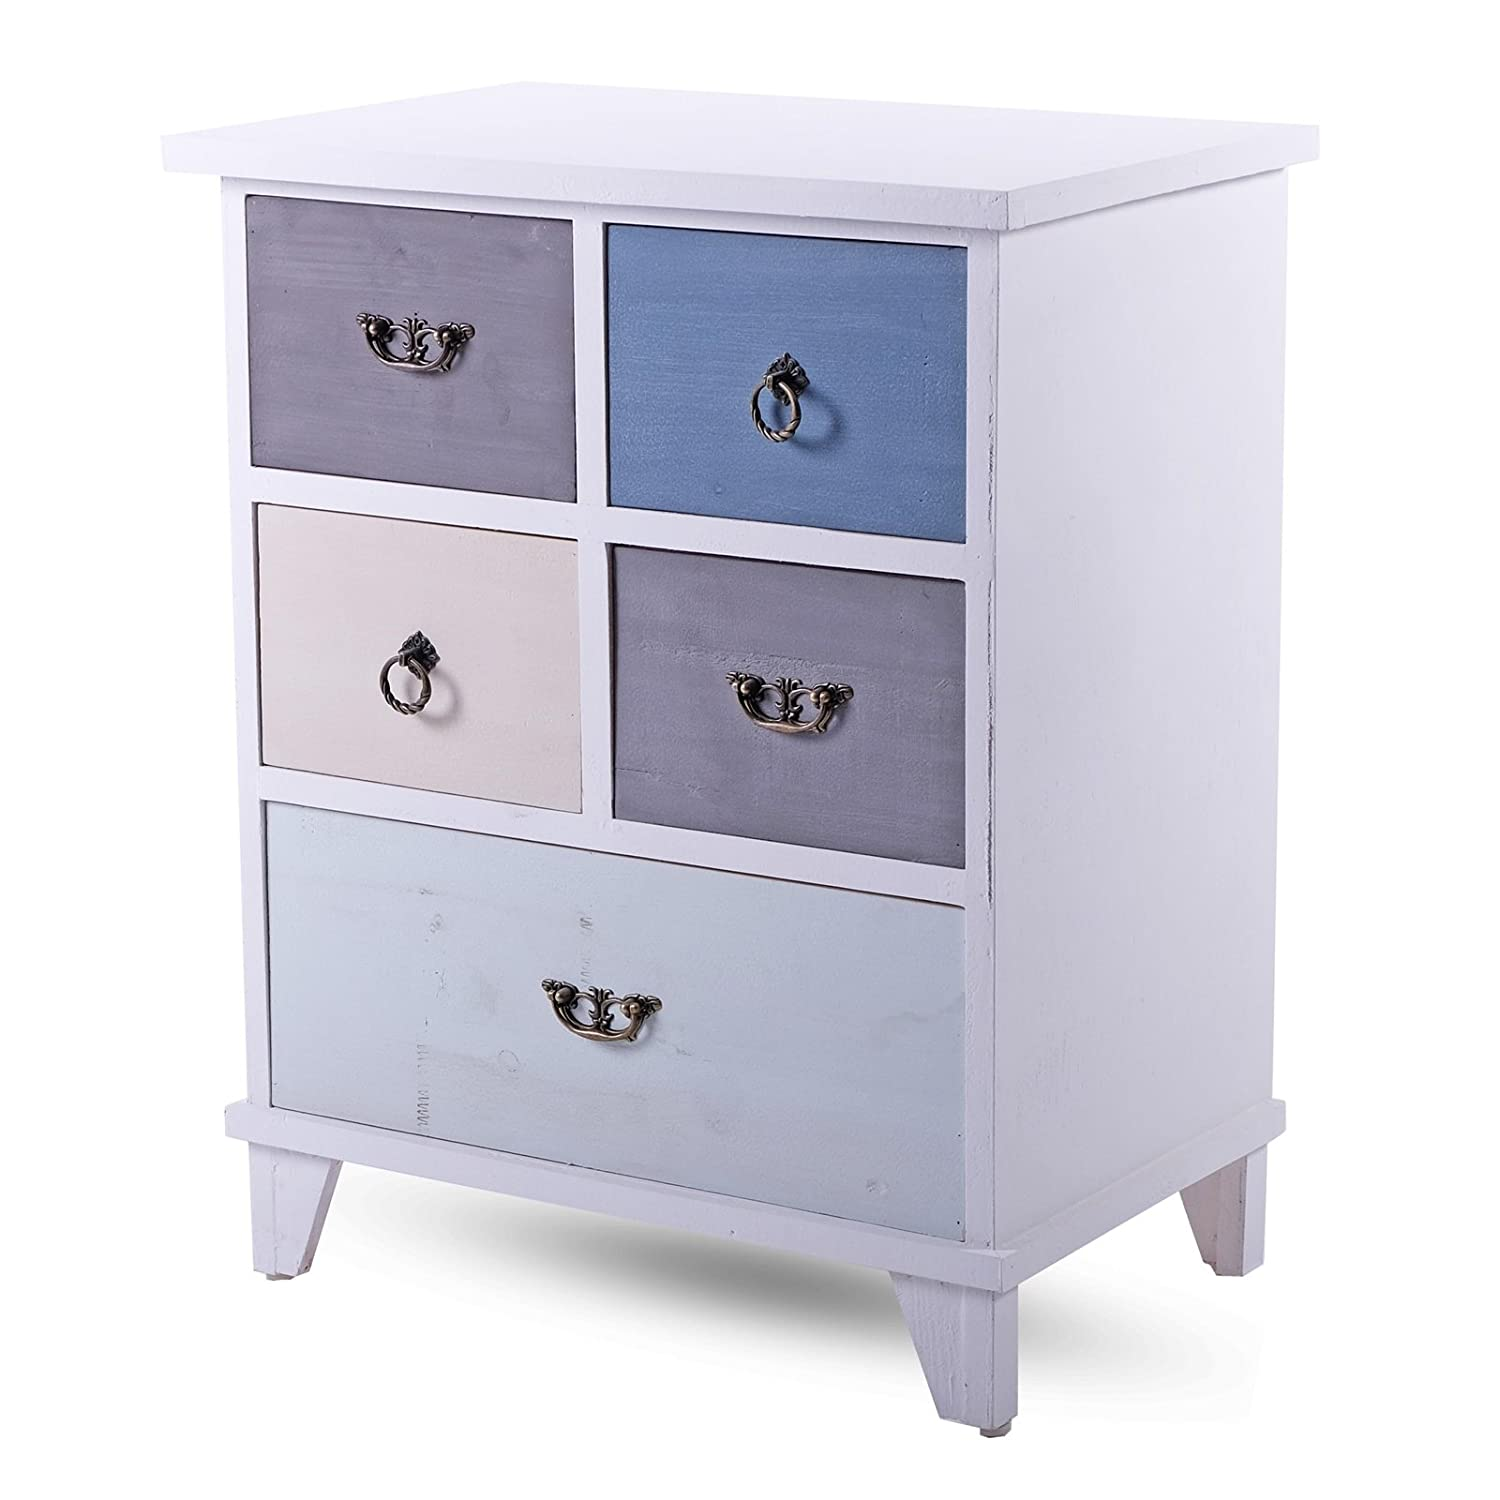 DESIGN DELIGHTS COUNTRY STYLE CHEST DRAWERS PETRONELLA | 5 drawers, 22x27 | sideboard xtradefactory